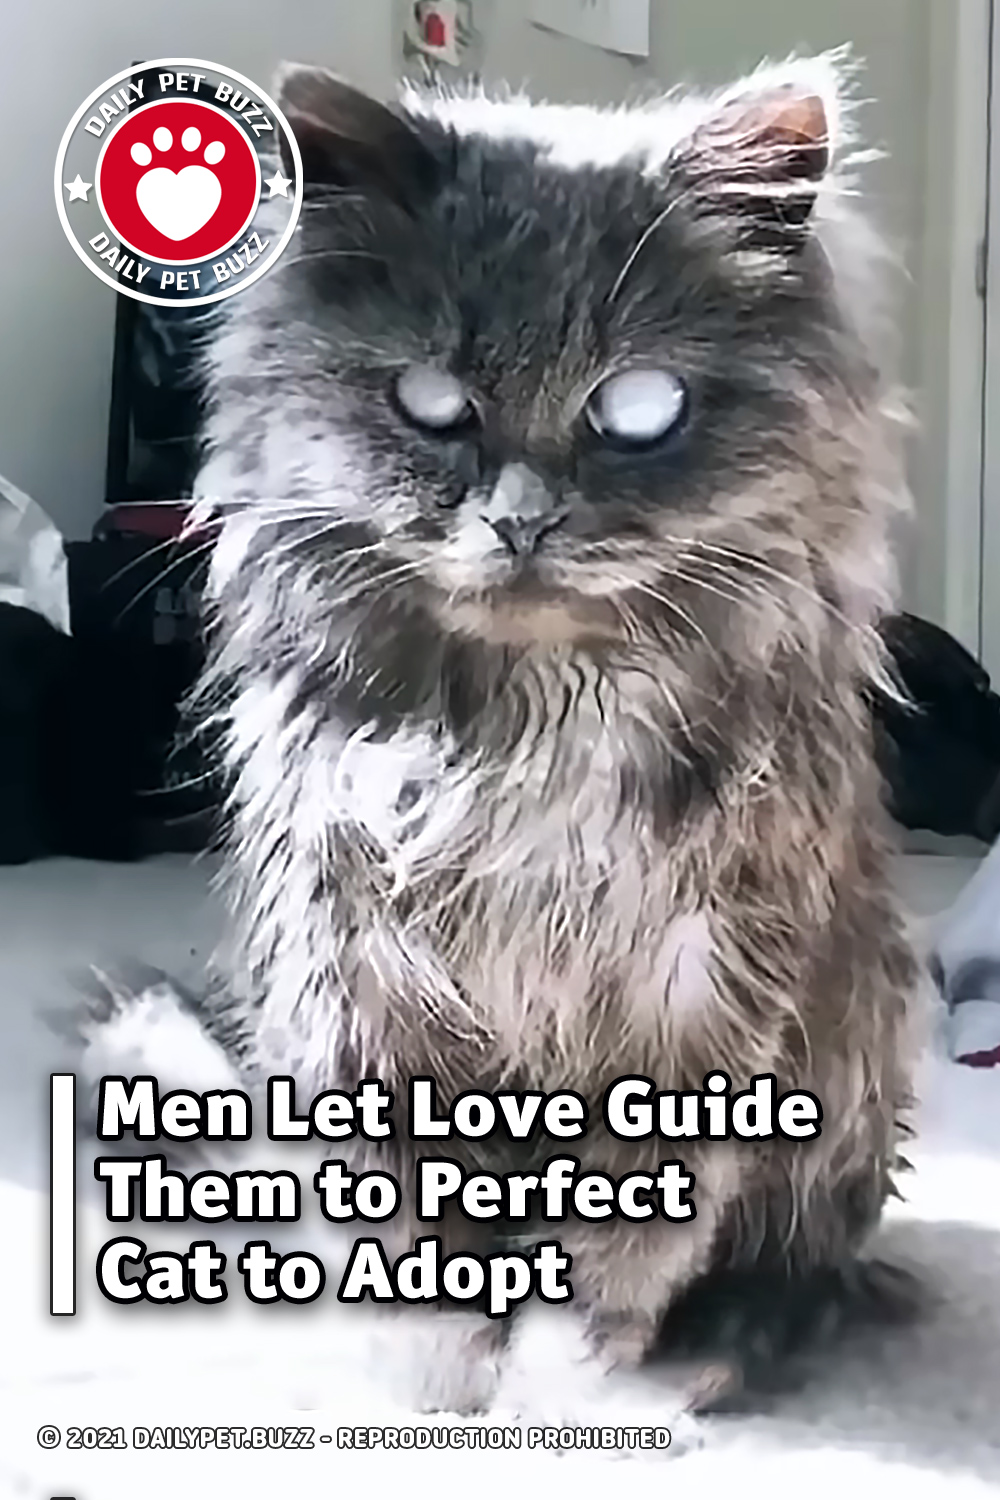 Men Let Love Guide Them to Perfect Cat to Adopt